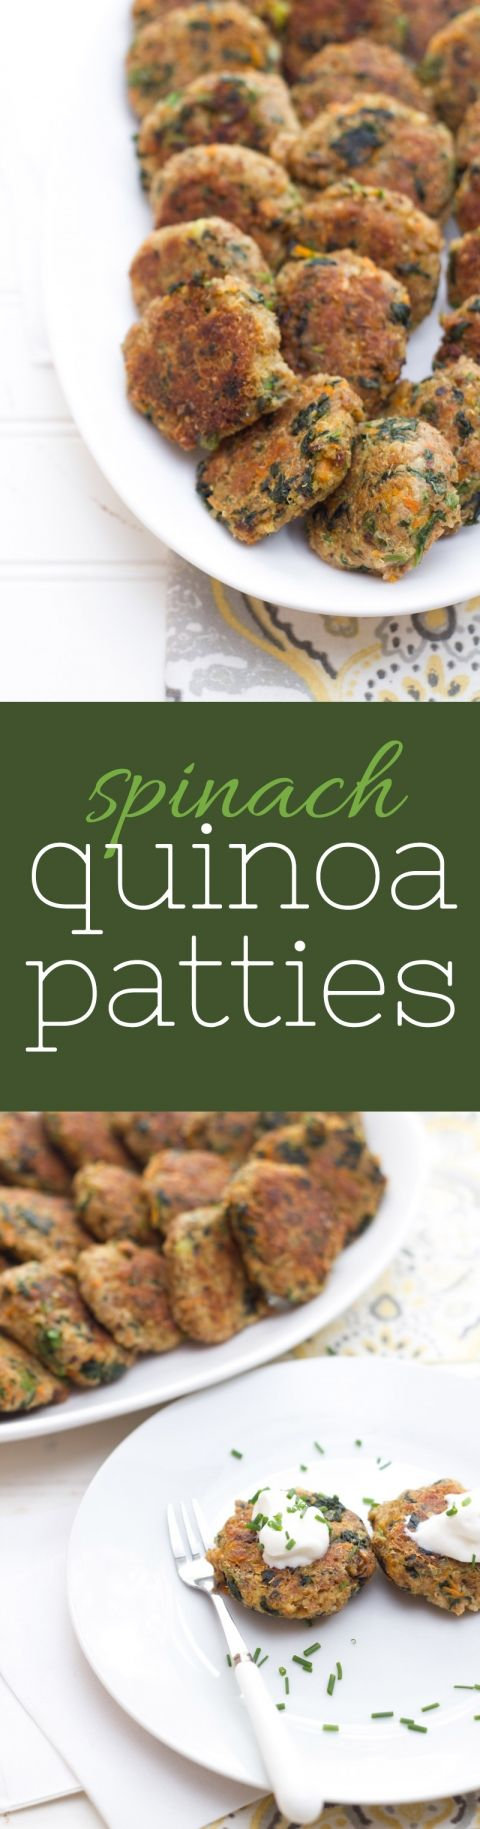 Spinach-Quinoa Patties. Mhmm I'll have to try these!!